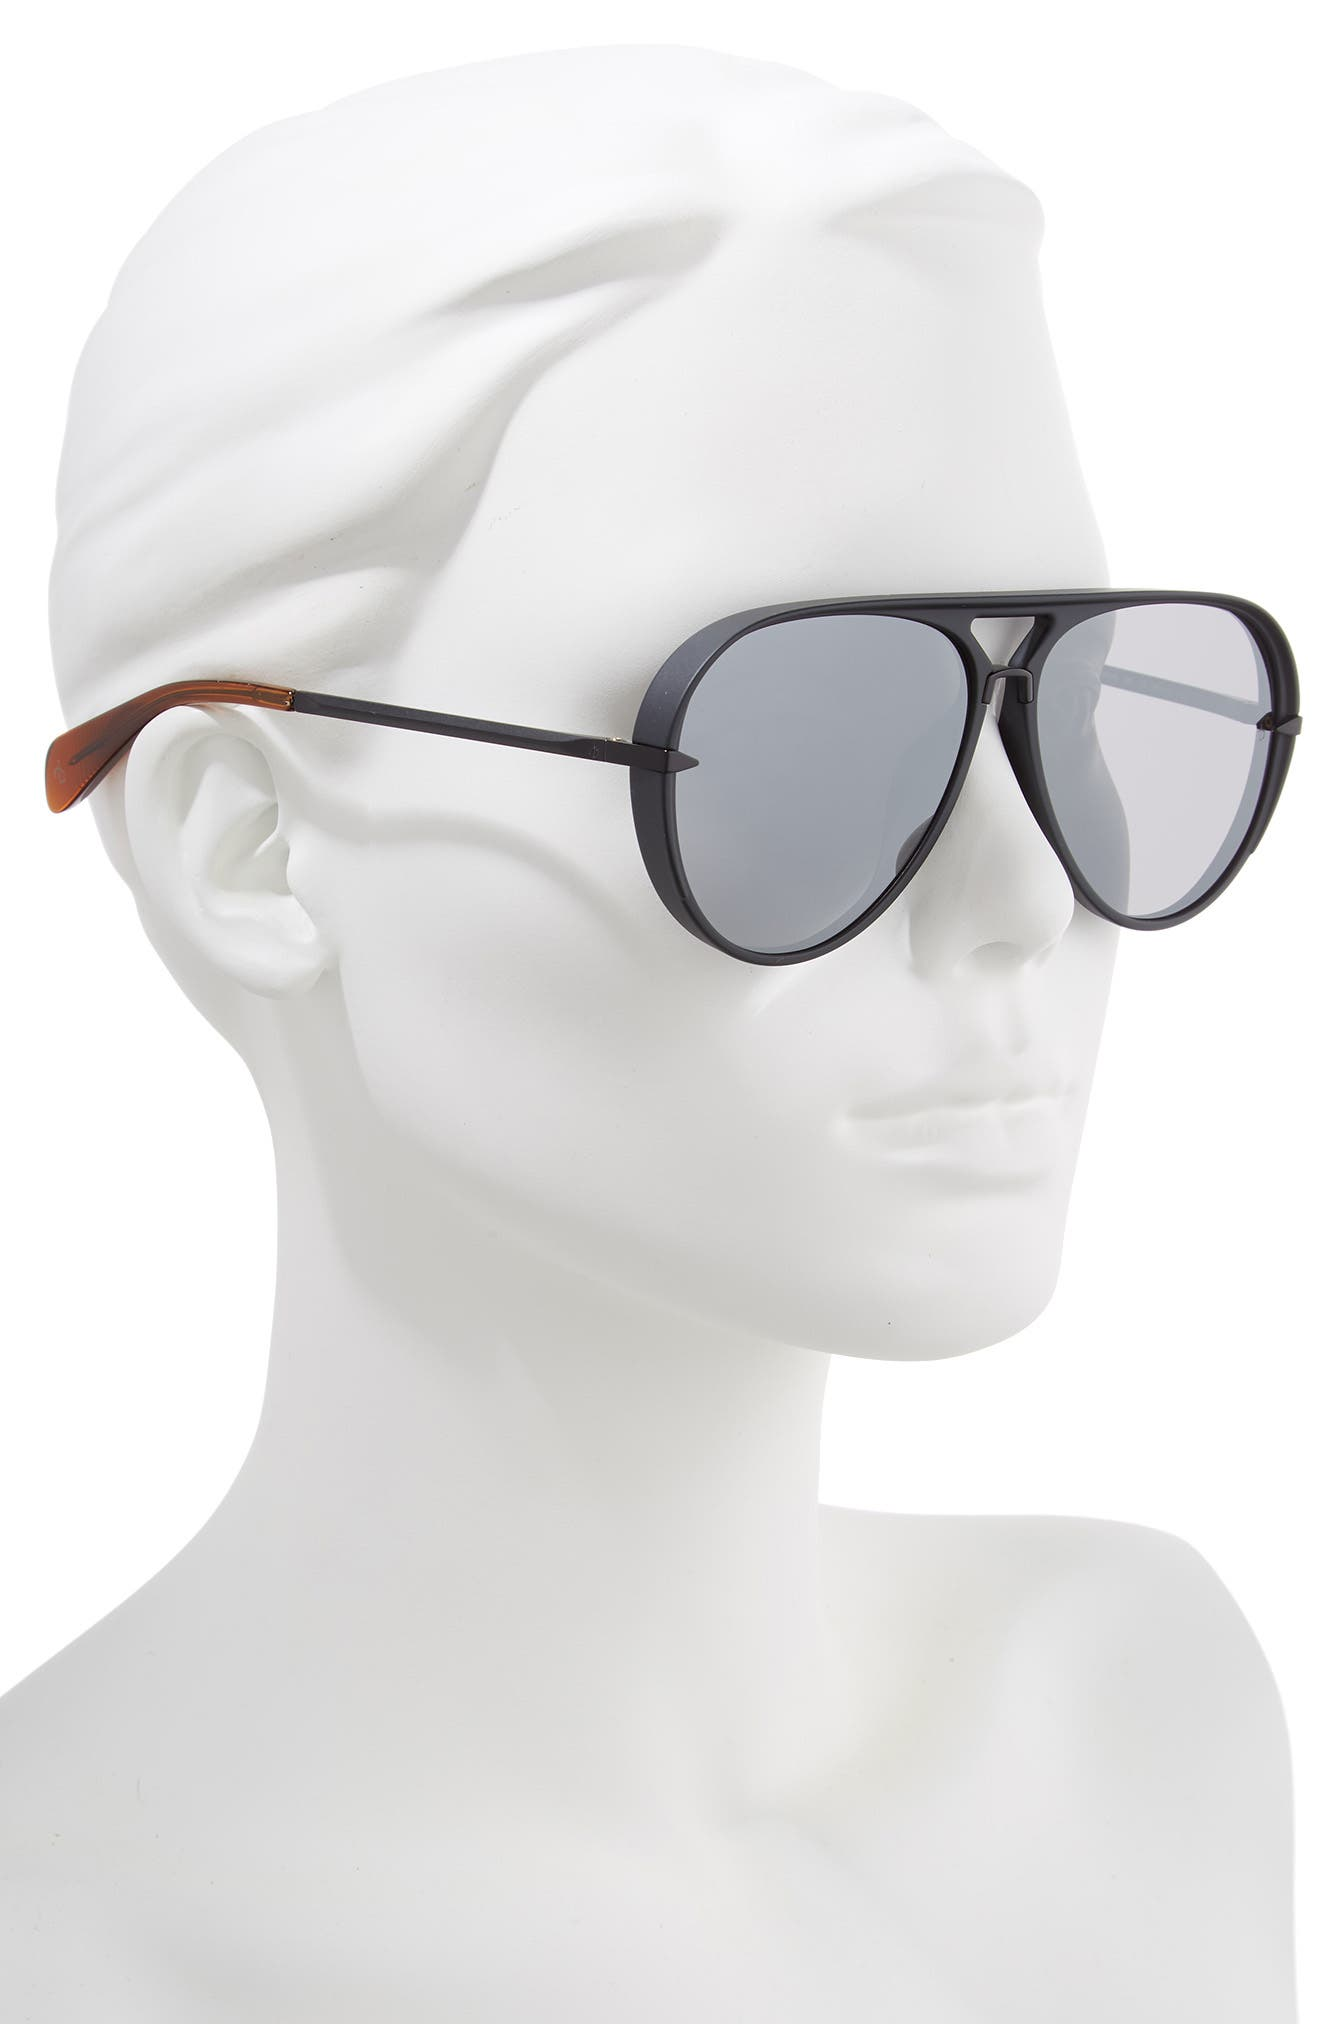 RAG & BONE, 60mm Mirrored Aviator Sunglasses, Alternate thumbnail 2, color, MATTE BLACK